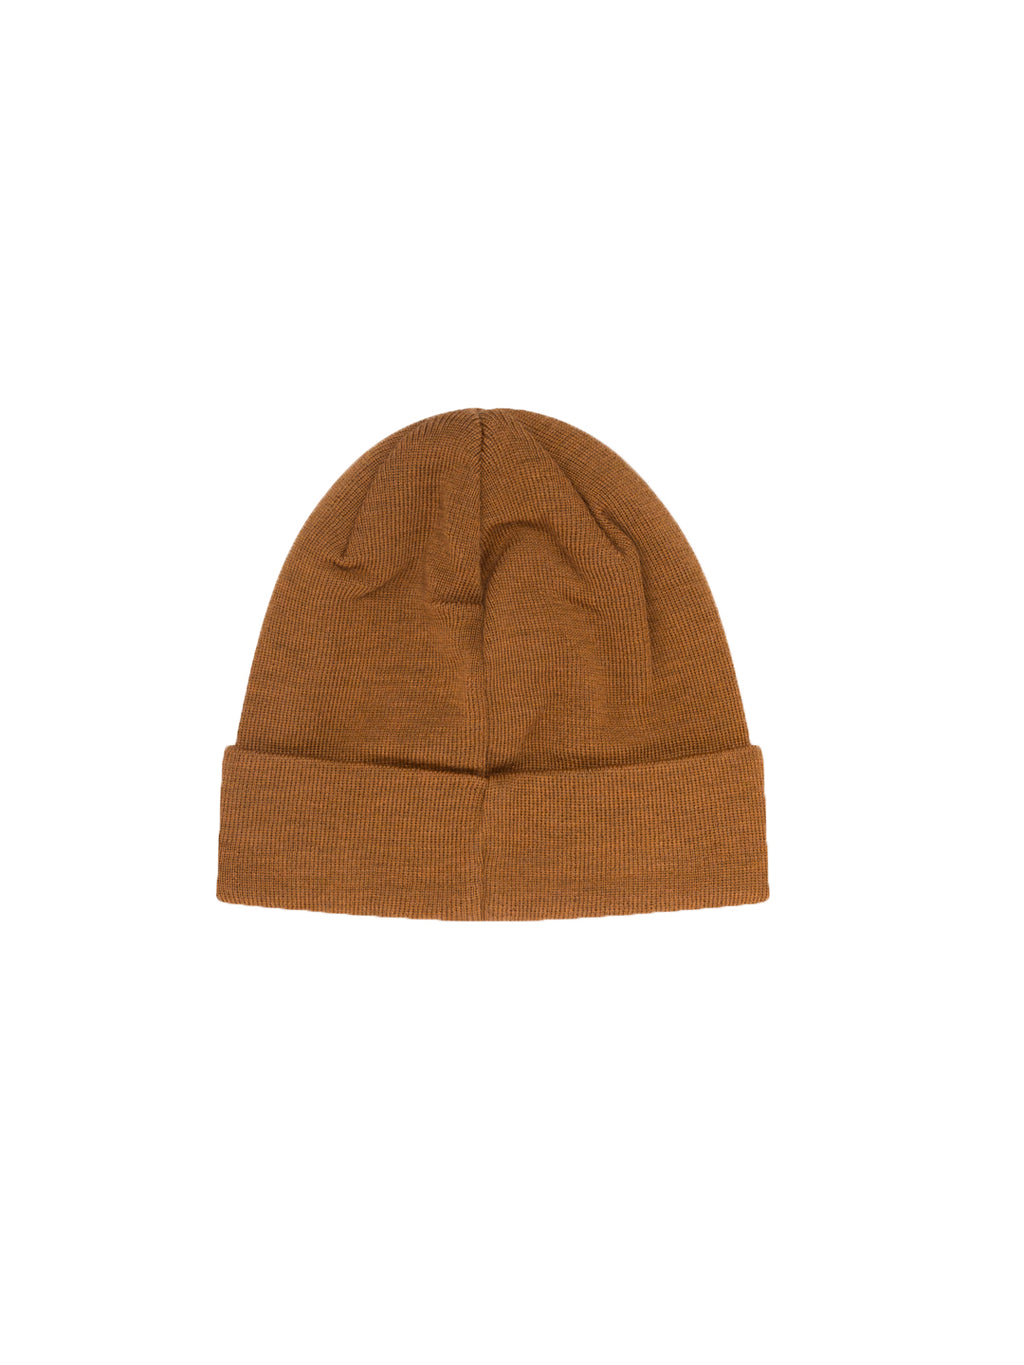 Merino Beanie Woman - Terracotta